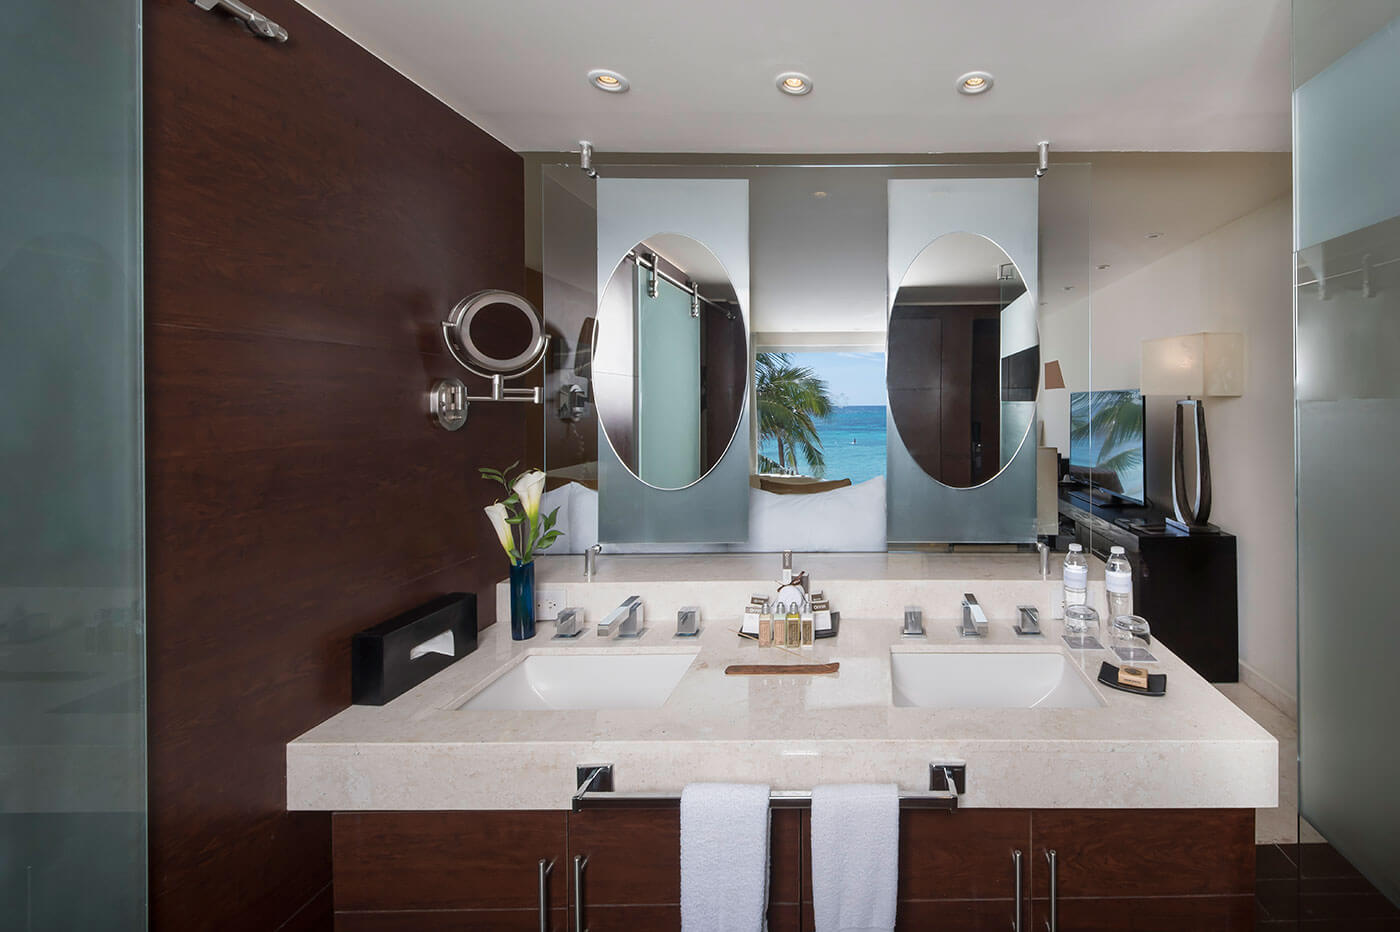 Master Suite bathroom with double sink, large mirror and amenities at The Sian Ka'an at Grand Tulum Hotel